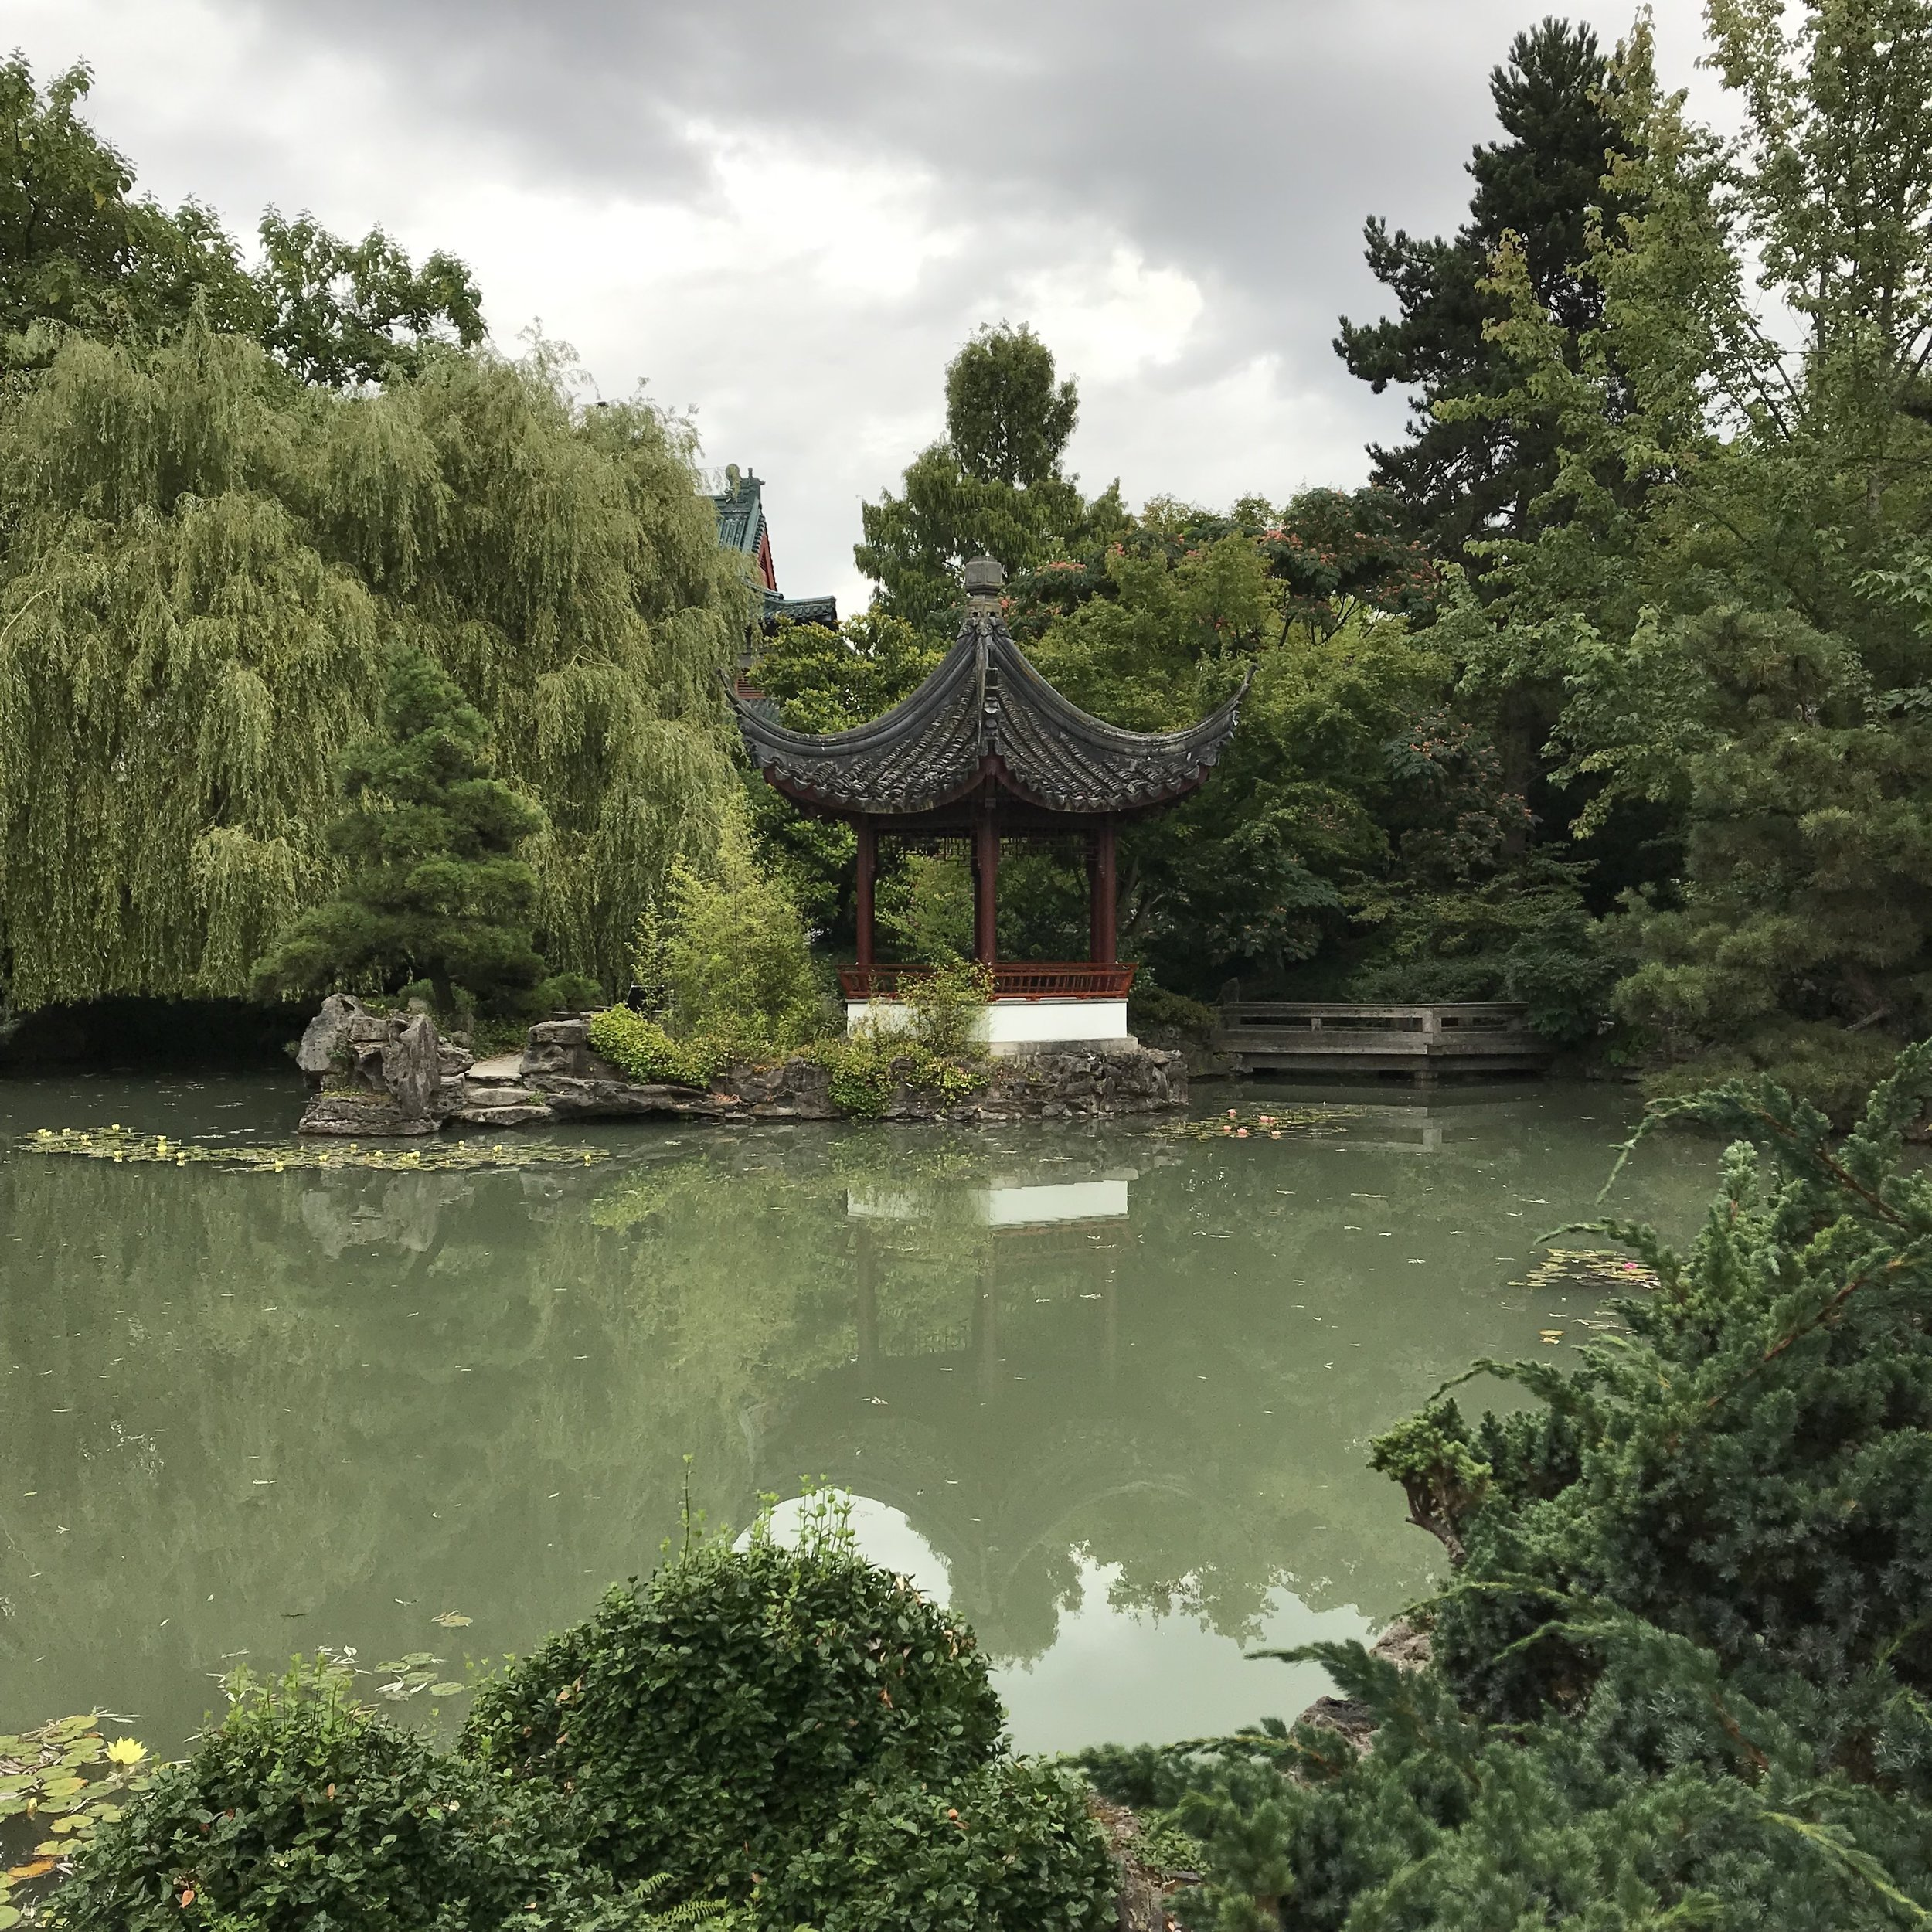 I don't have a specifically appropriate image for this post, so here's a nice picture I took at the Dr. Sun Yat-Sen Garden over the weekend.